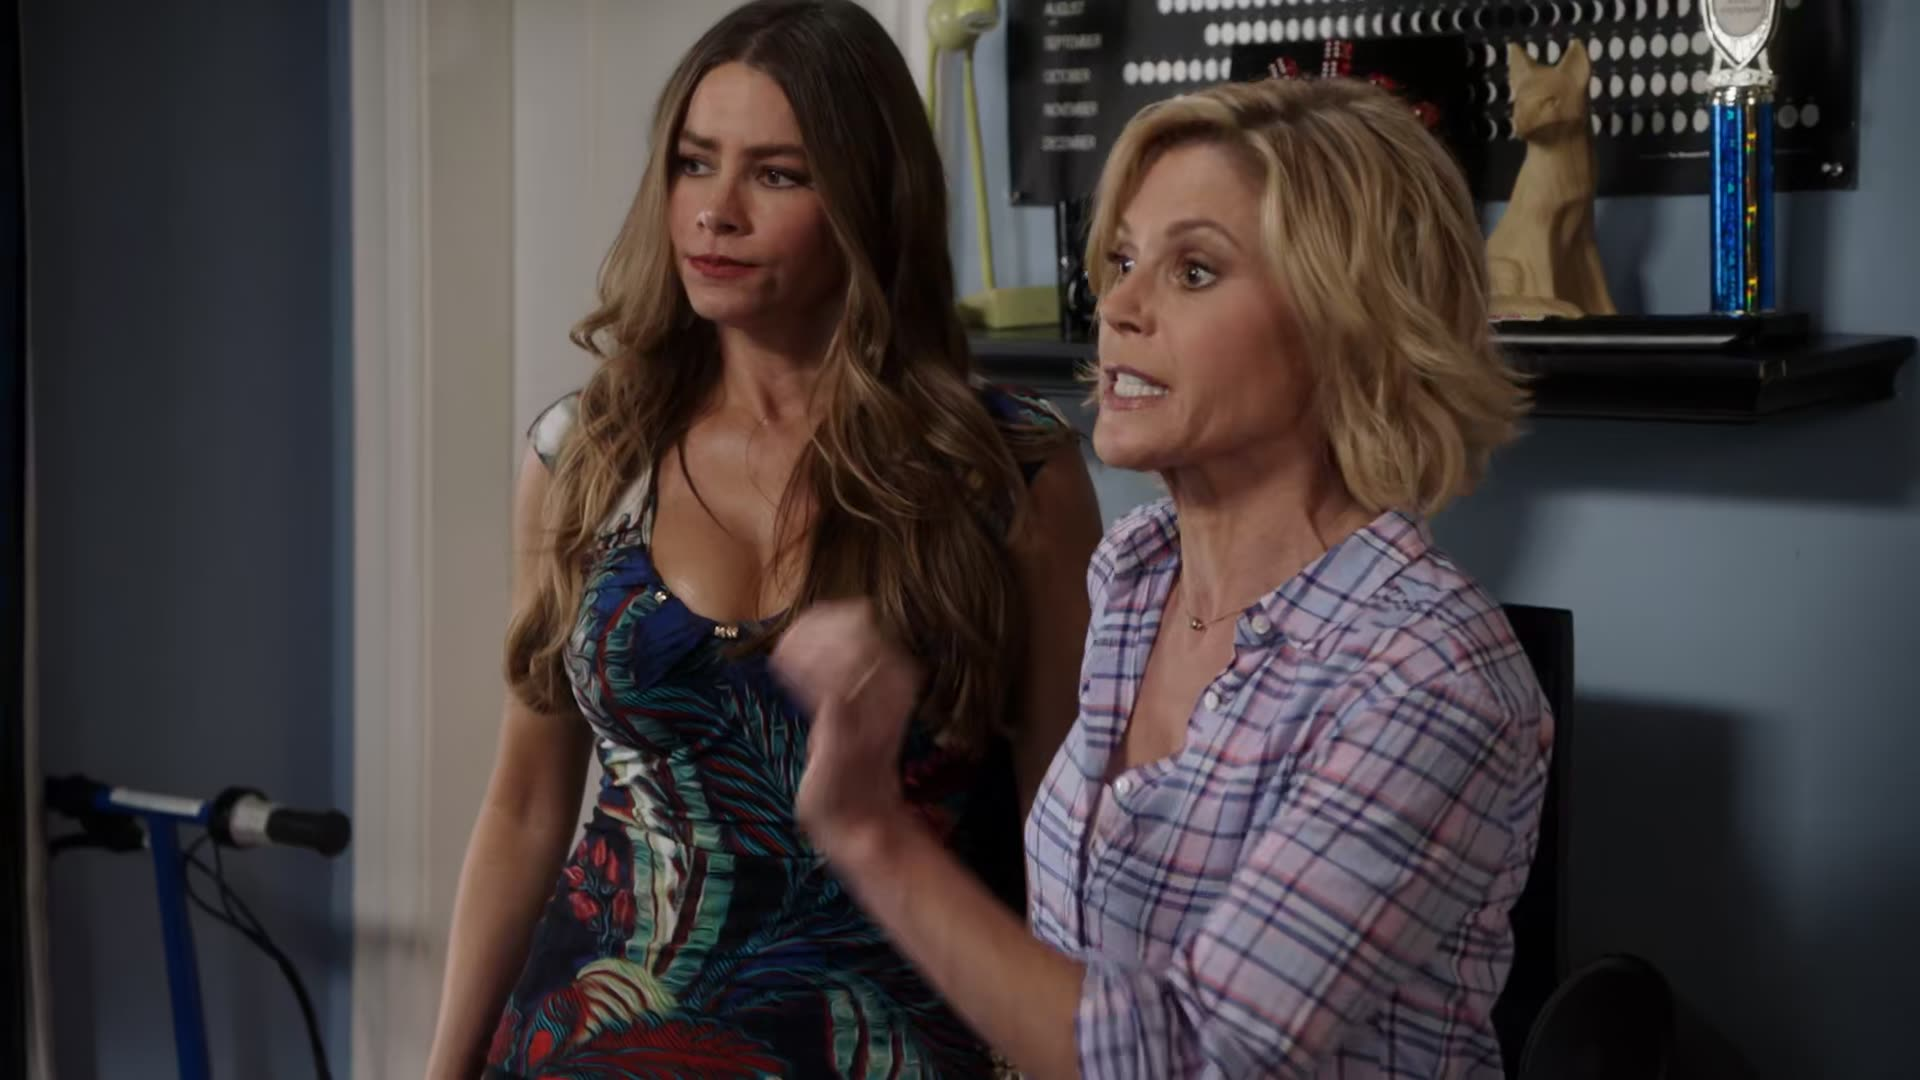 Sofia Vergara's cleavage enters the room scene from Modern Family